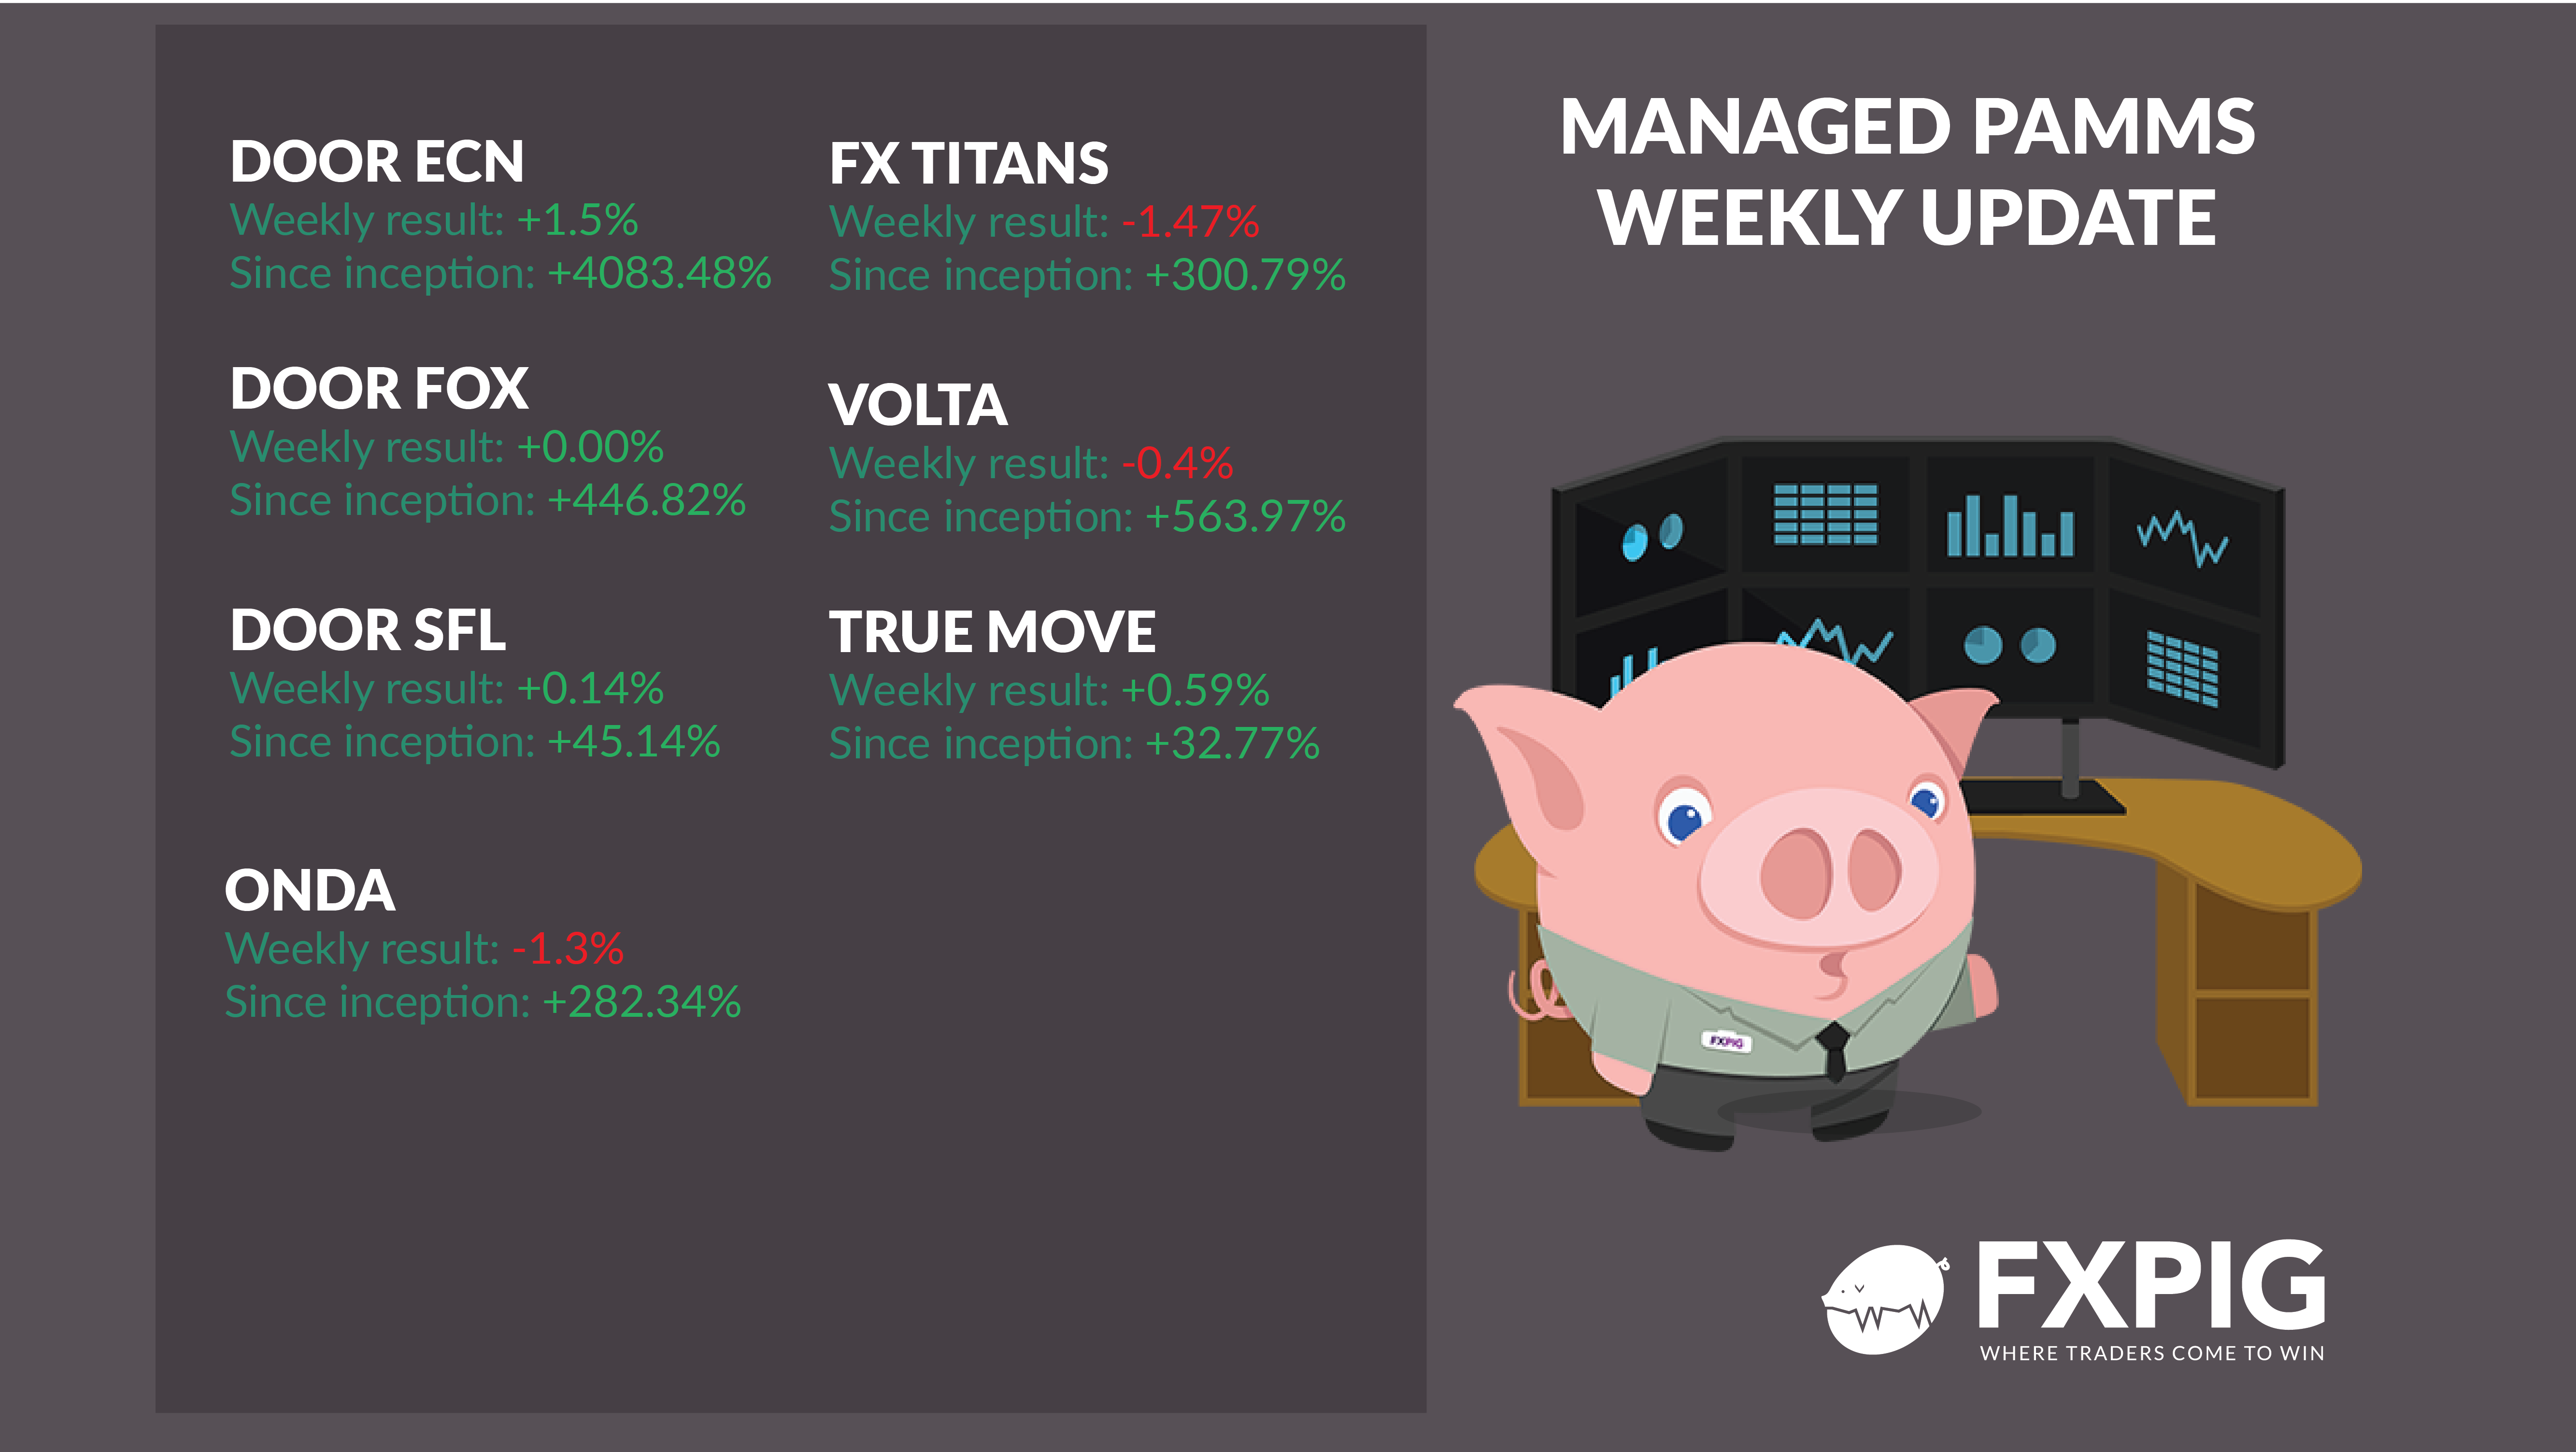 Forex_Trading_Fx_Trader_FXPIG_PAMMS_MANAGED_ACCOUNTS_PROFIT_15.04.2019